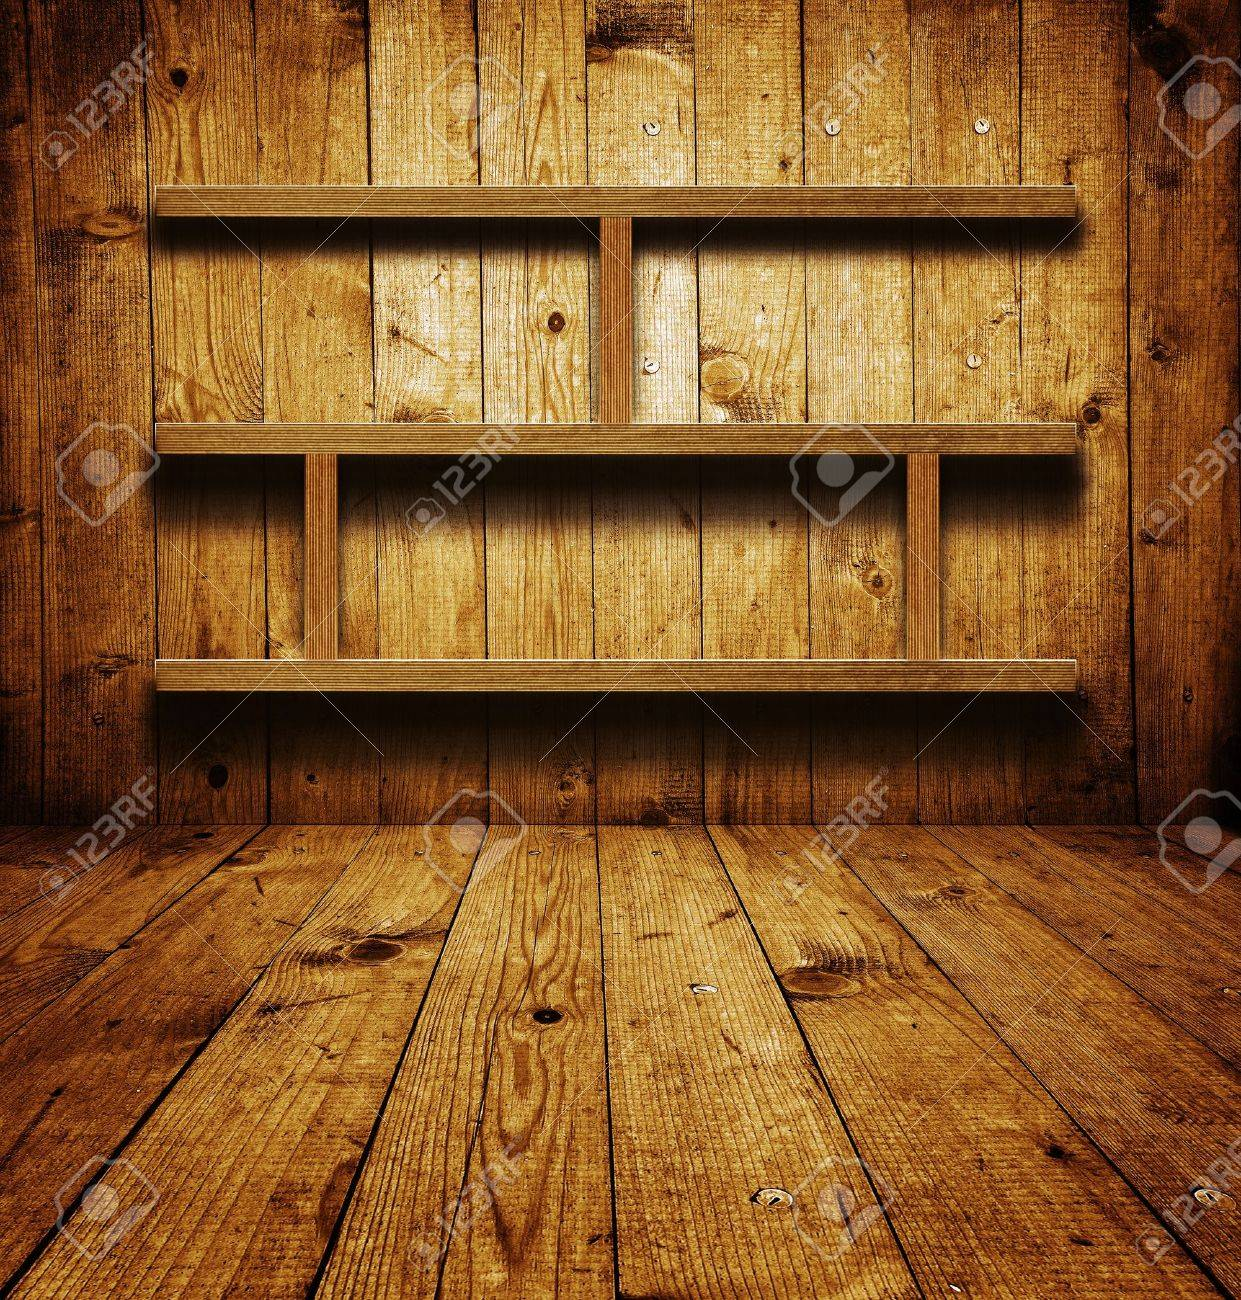 Vintage wooden bookshelf over a grungy background Stock Photo - 16772058